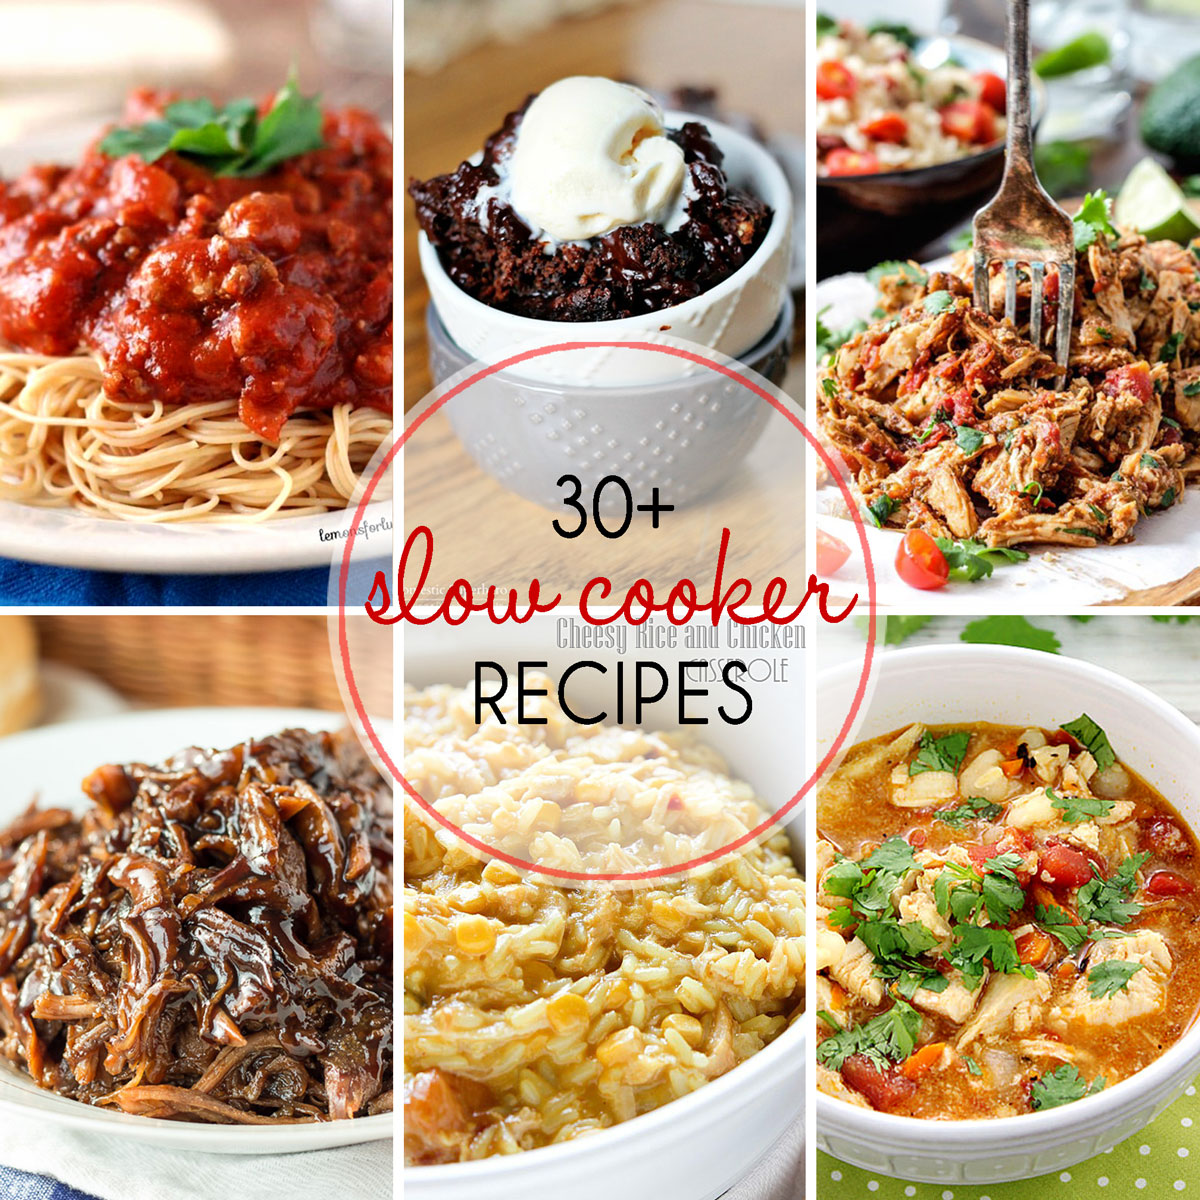 30+ Slow Cooker Recipes - So many fabulous dinner recipes to try and even a slow cooker dessert recipe! | The Love Nerds